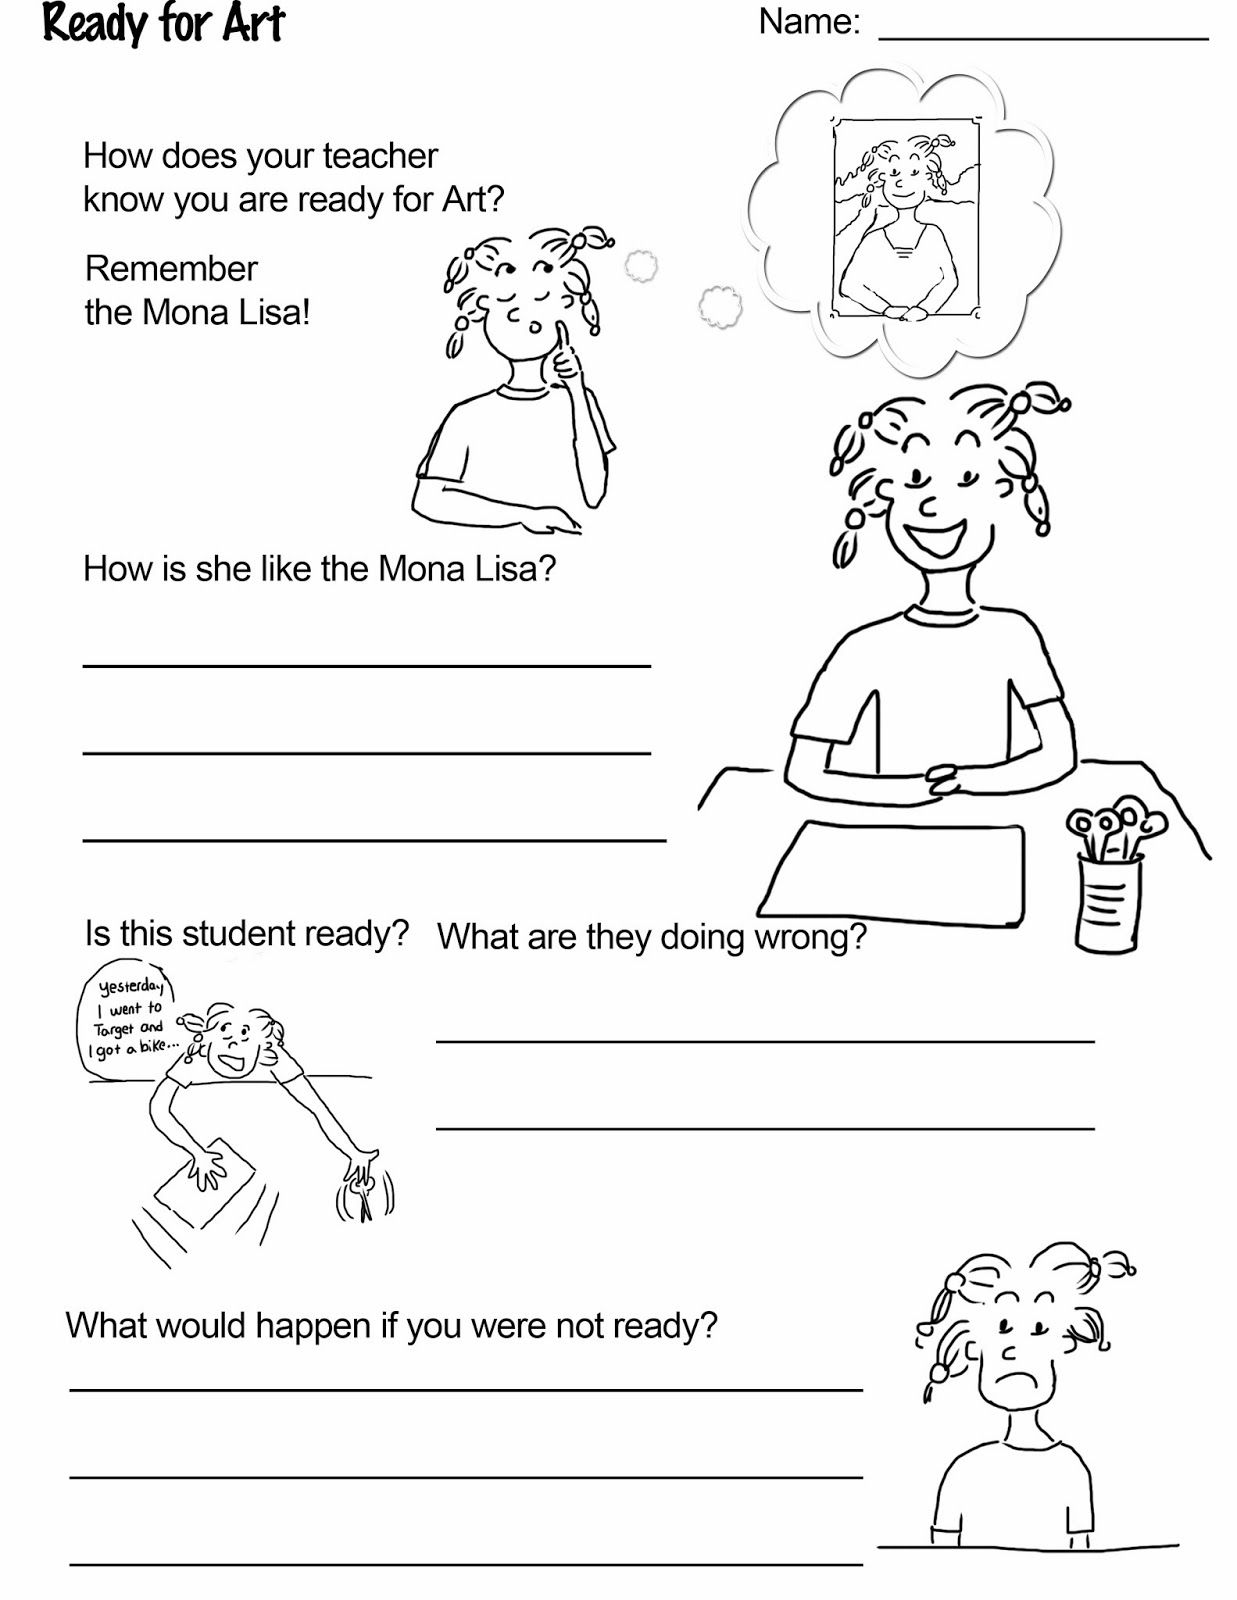 Worksheets Classroom Rules Worksheet free worksheet download from art rules a booklet that helps no corner suns an activity filled workbook to help reinforce your classroom and routine